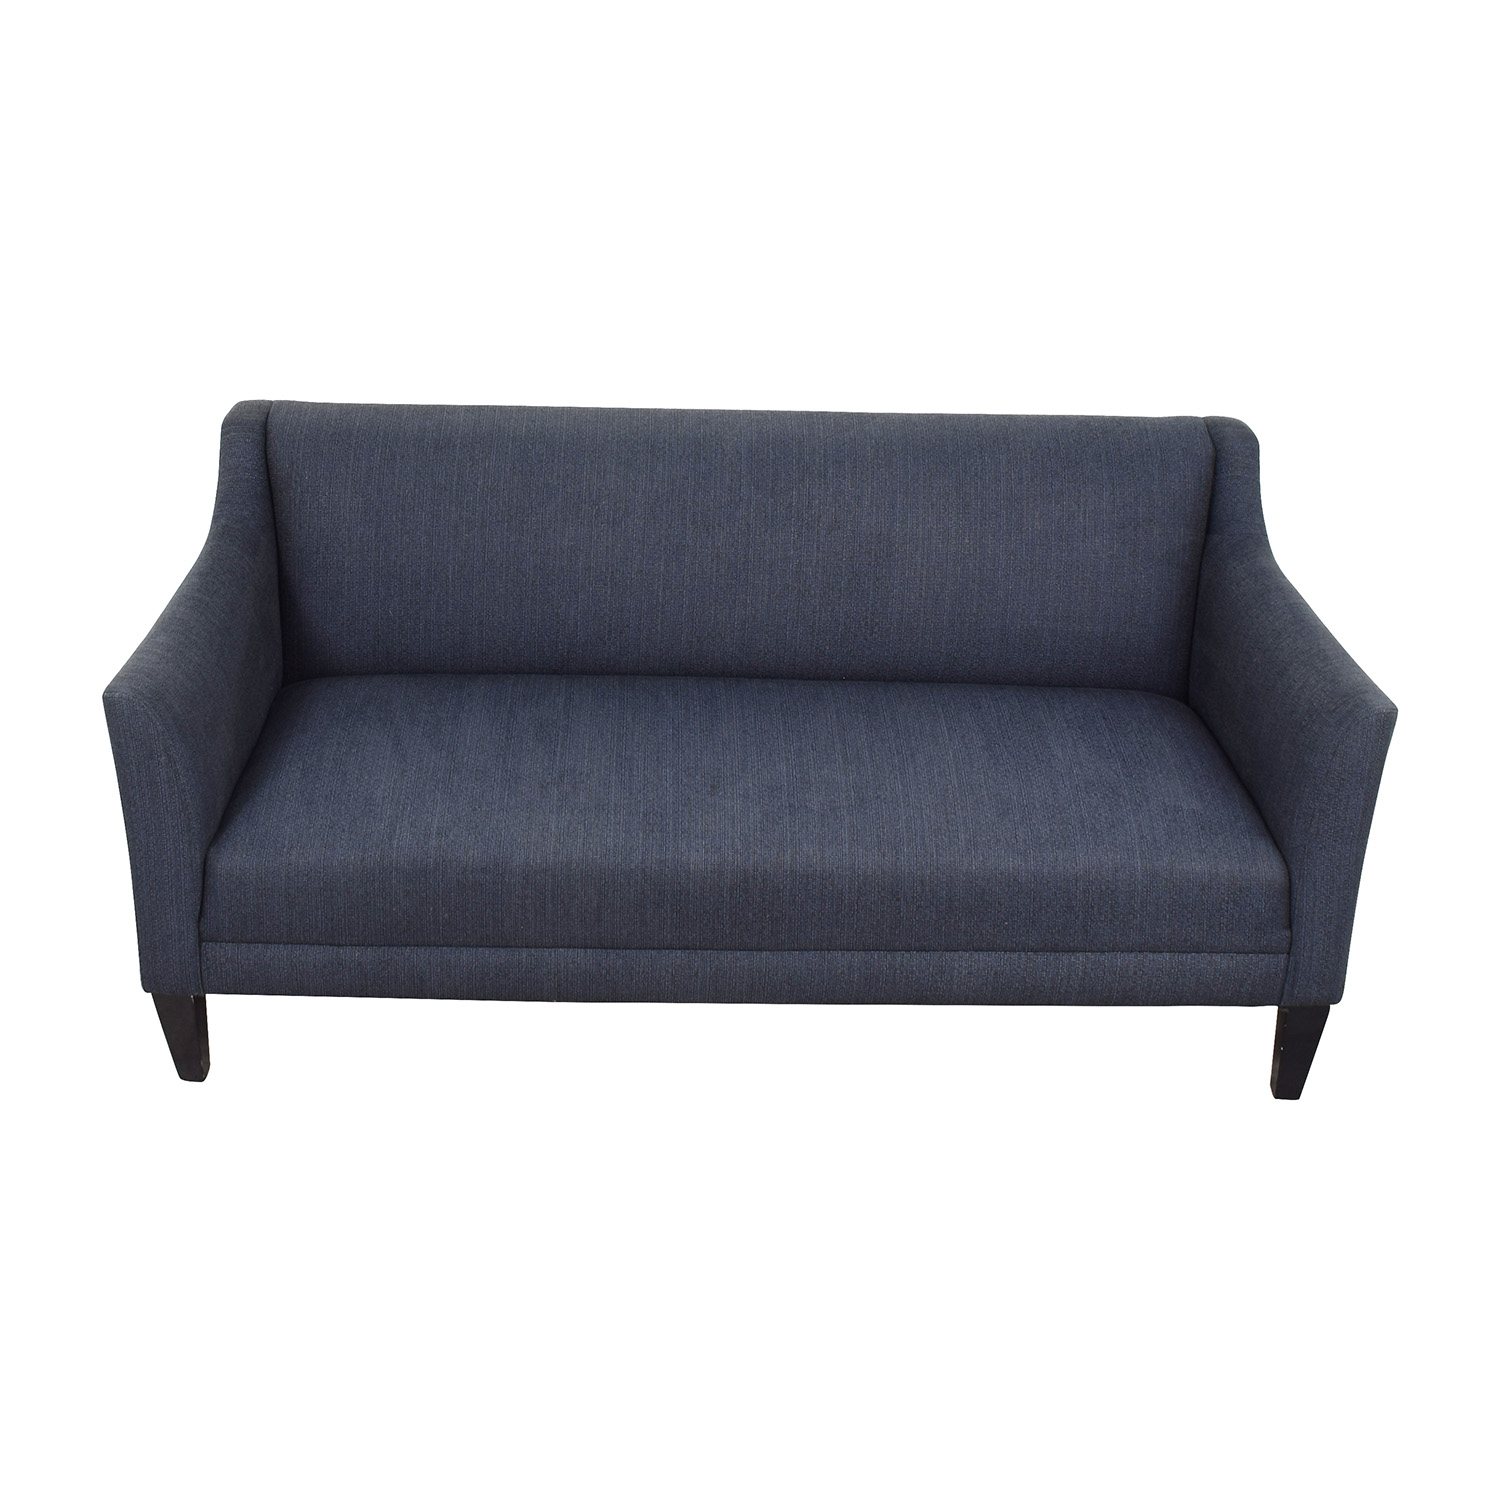 Crate Barrel Navy Blue Single Cushion Couch